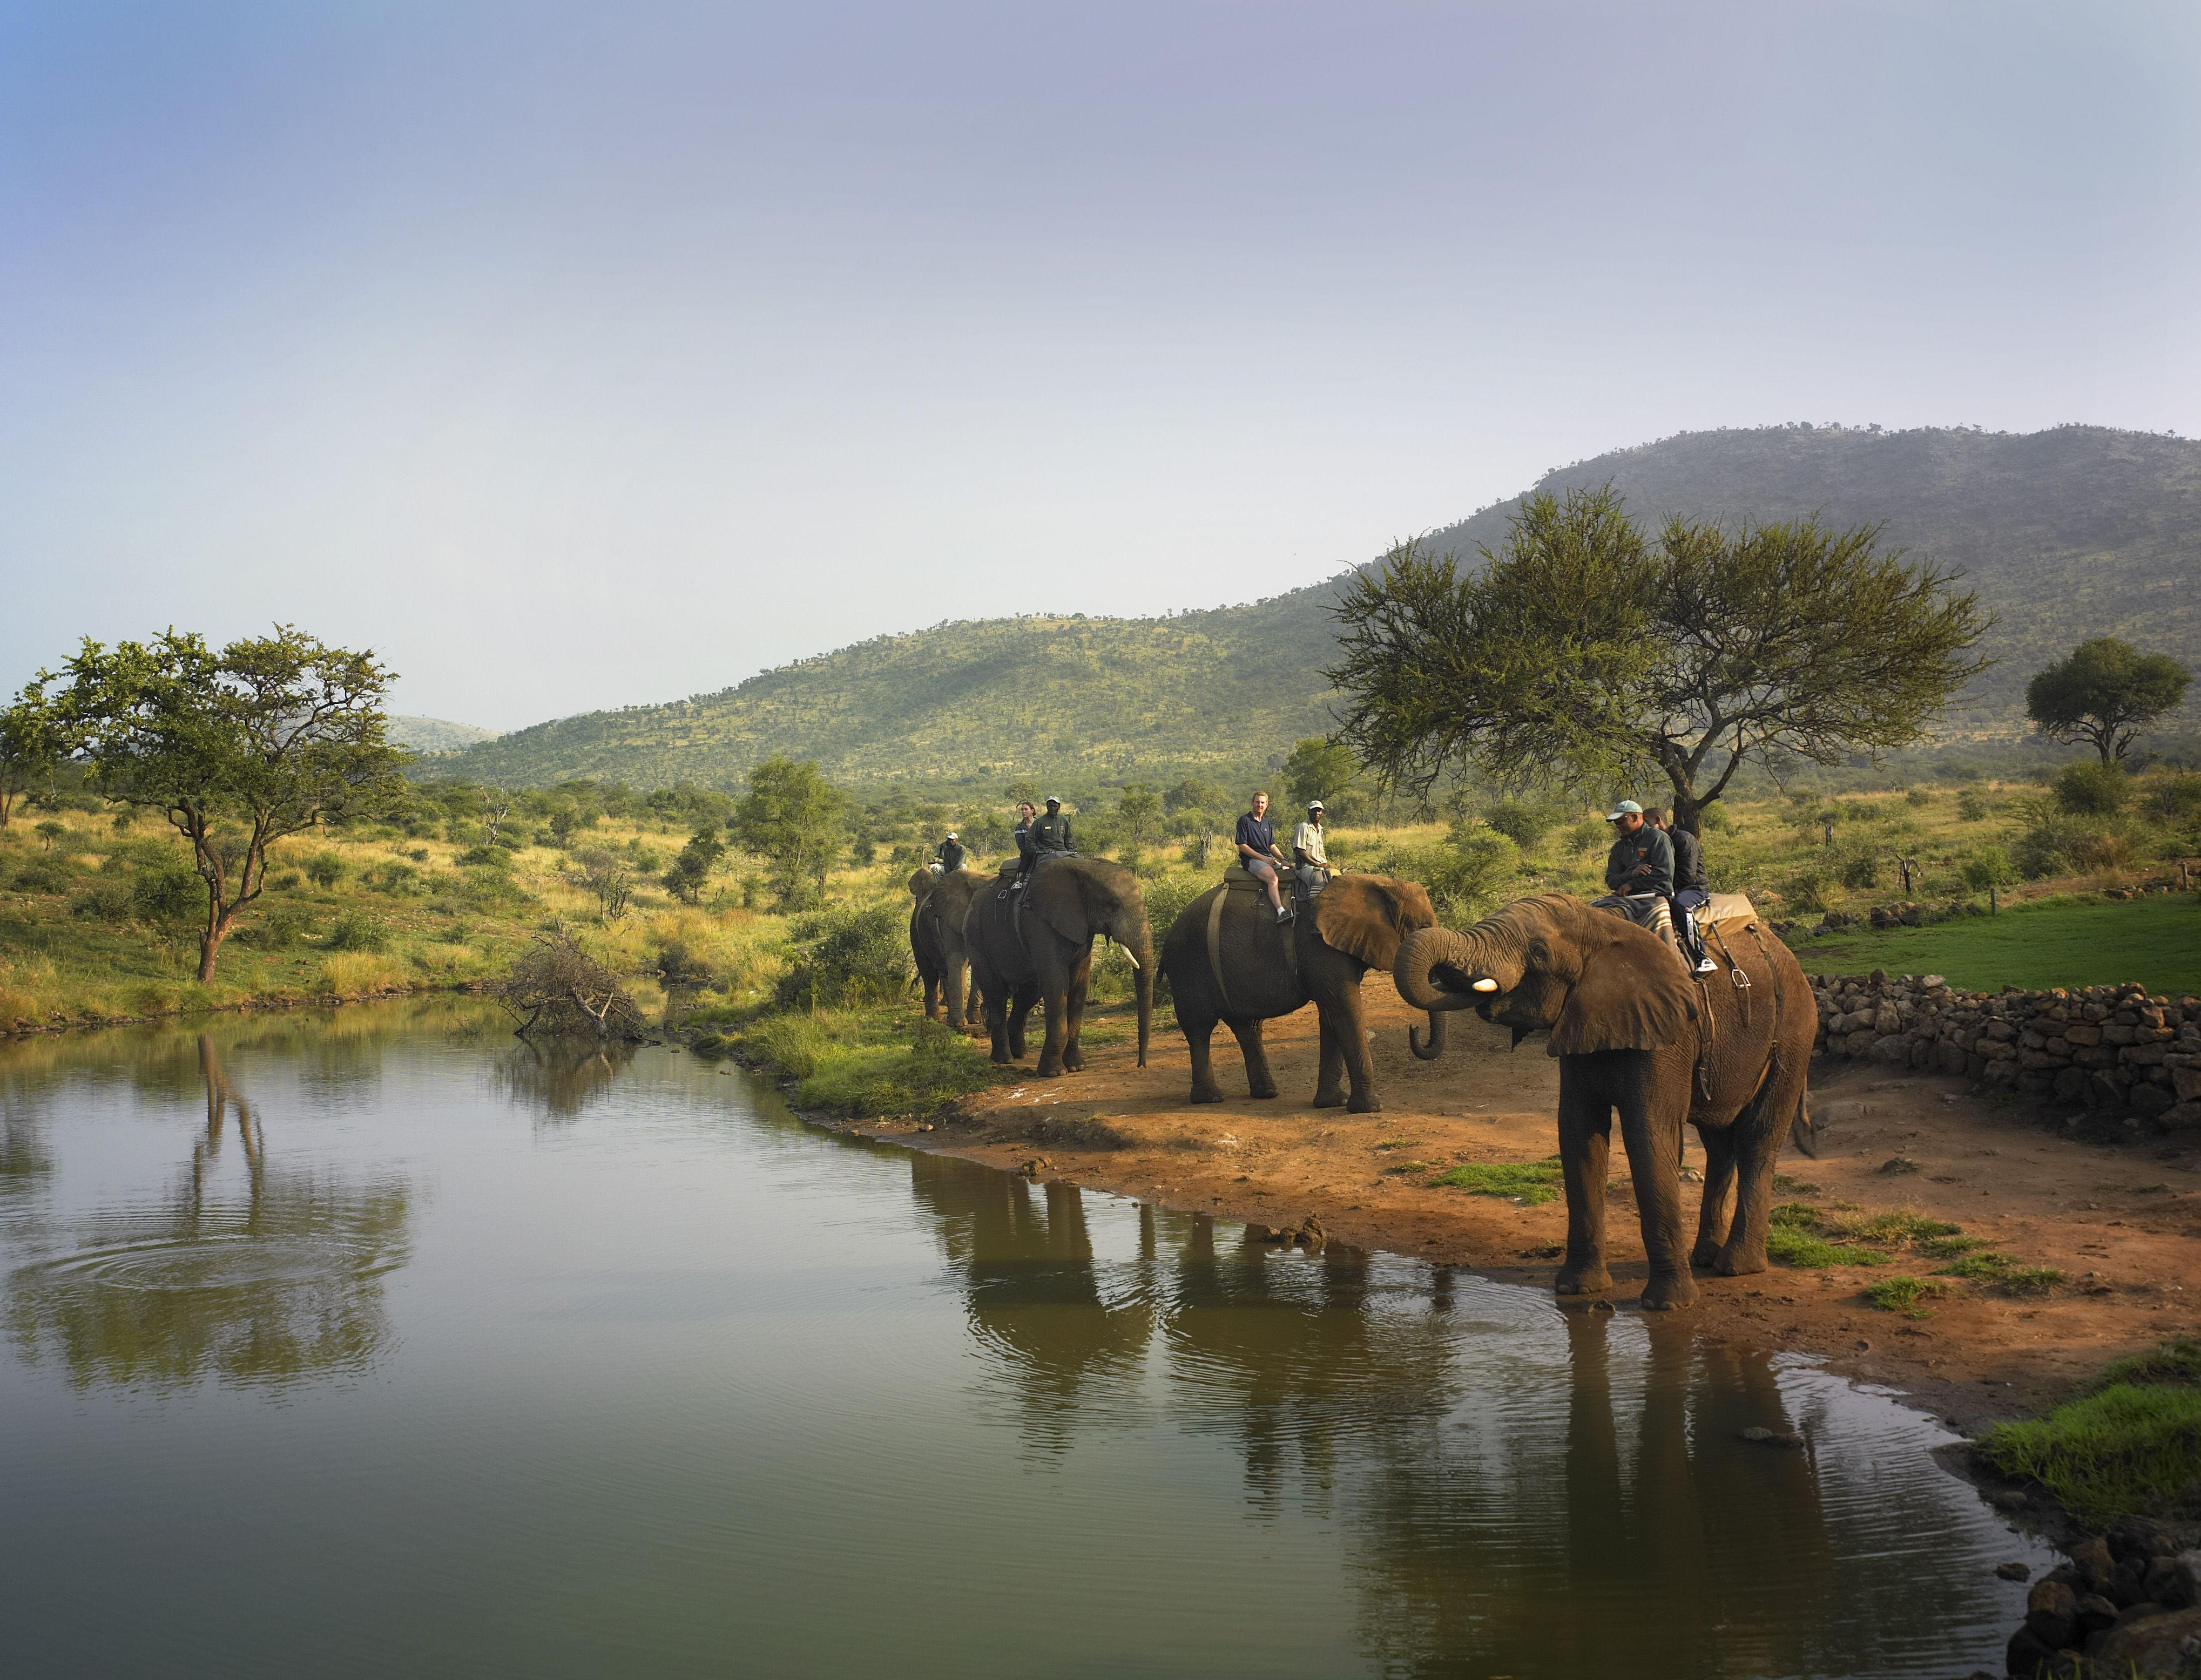 Elephant rides in Sun City, South Africa